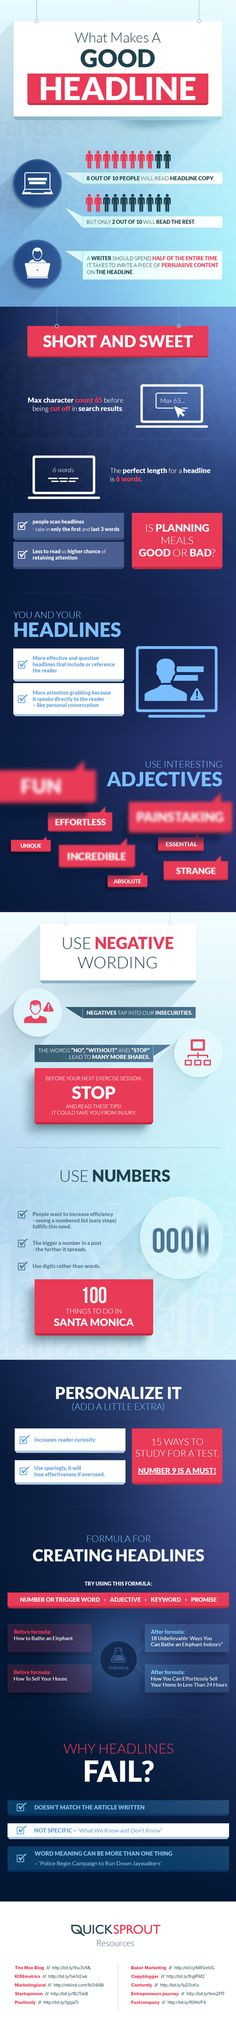 The Formula For A Perfect Headline In One Digestible Infographic Content Marketing Strategy Inbound Marketing, Marketing Trends, Content Marketing Strategy, Business Marketing, Internet Marketing, Media Marketing, Online Marketing, Marketing Branding, Business Entrepreneur